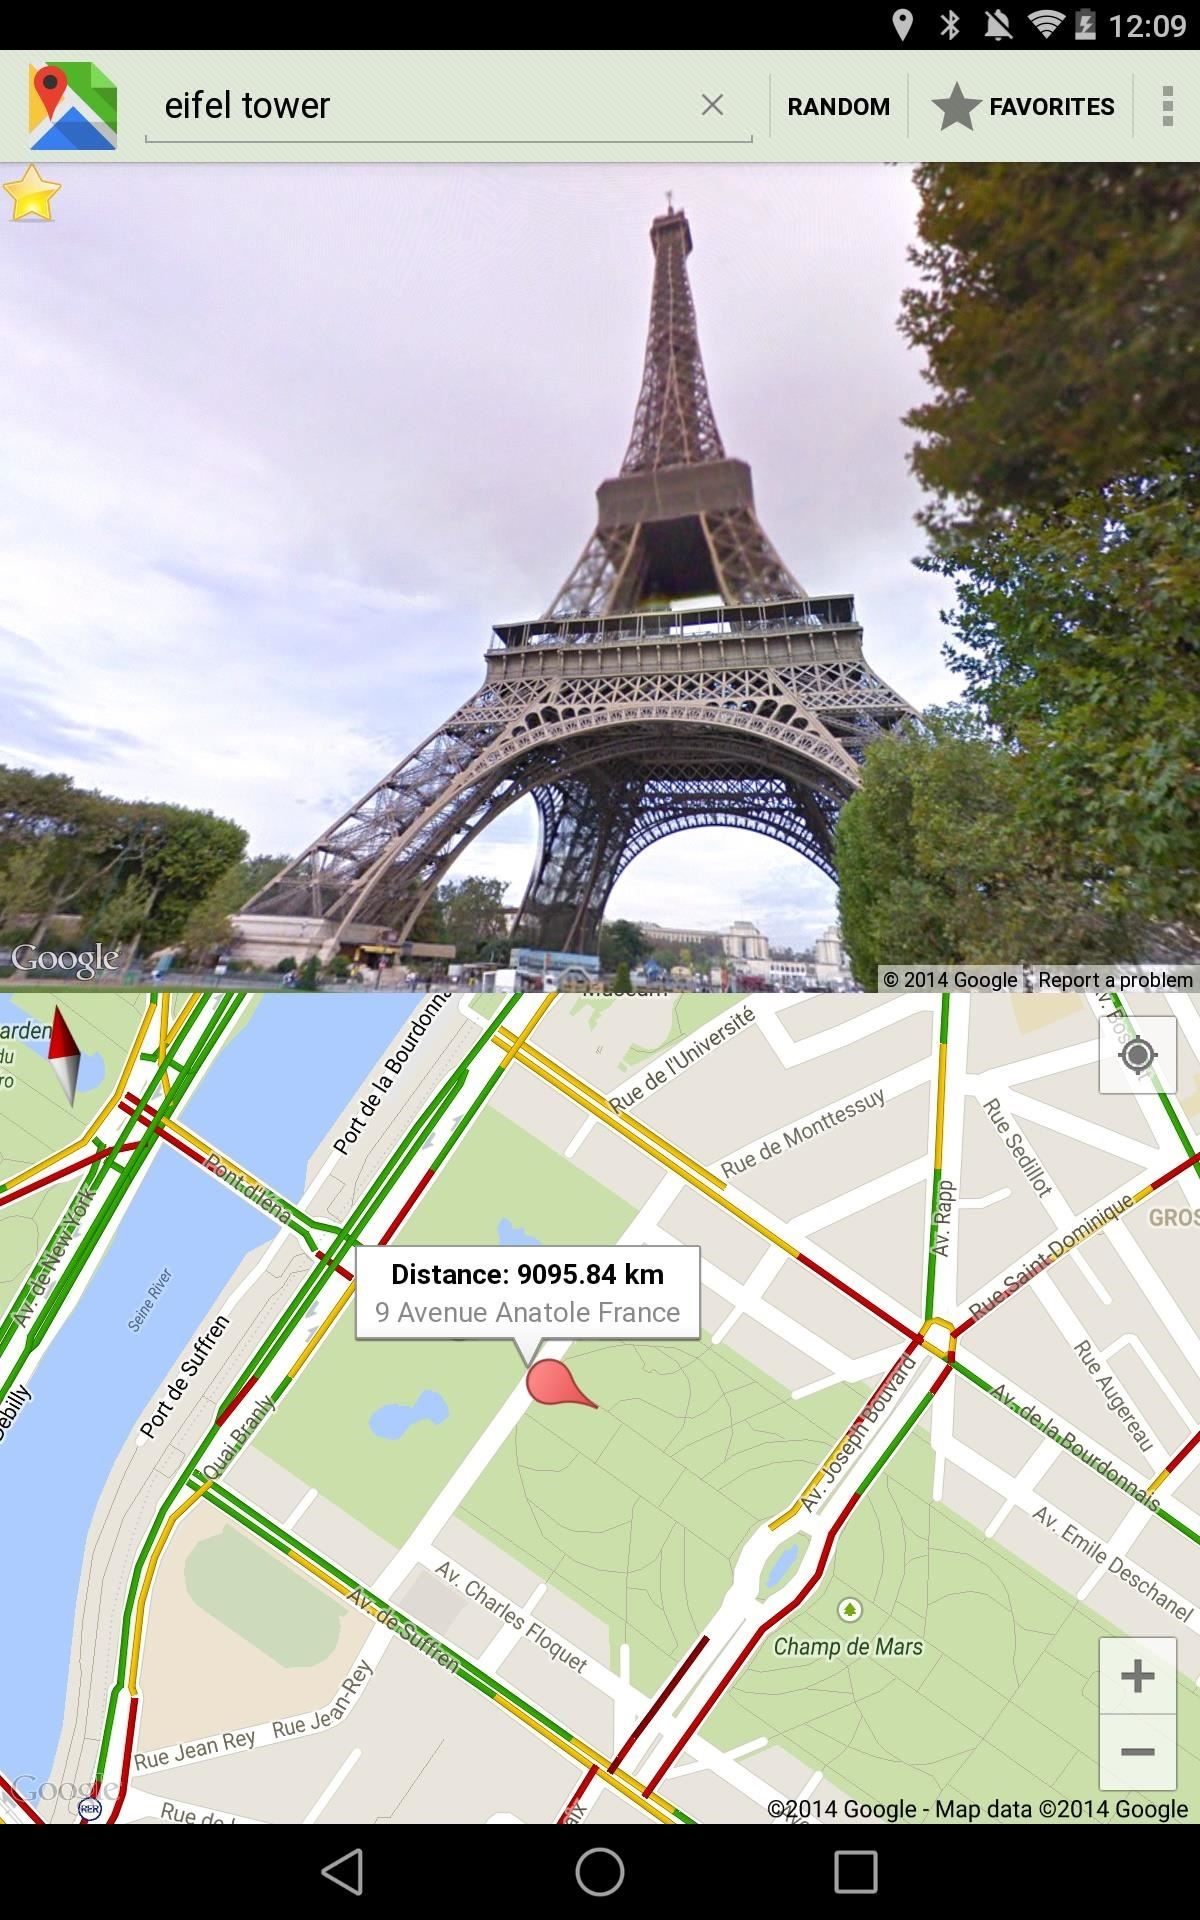 How to View Google Maps & Street View in Split-Screen Mode on Android